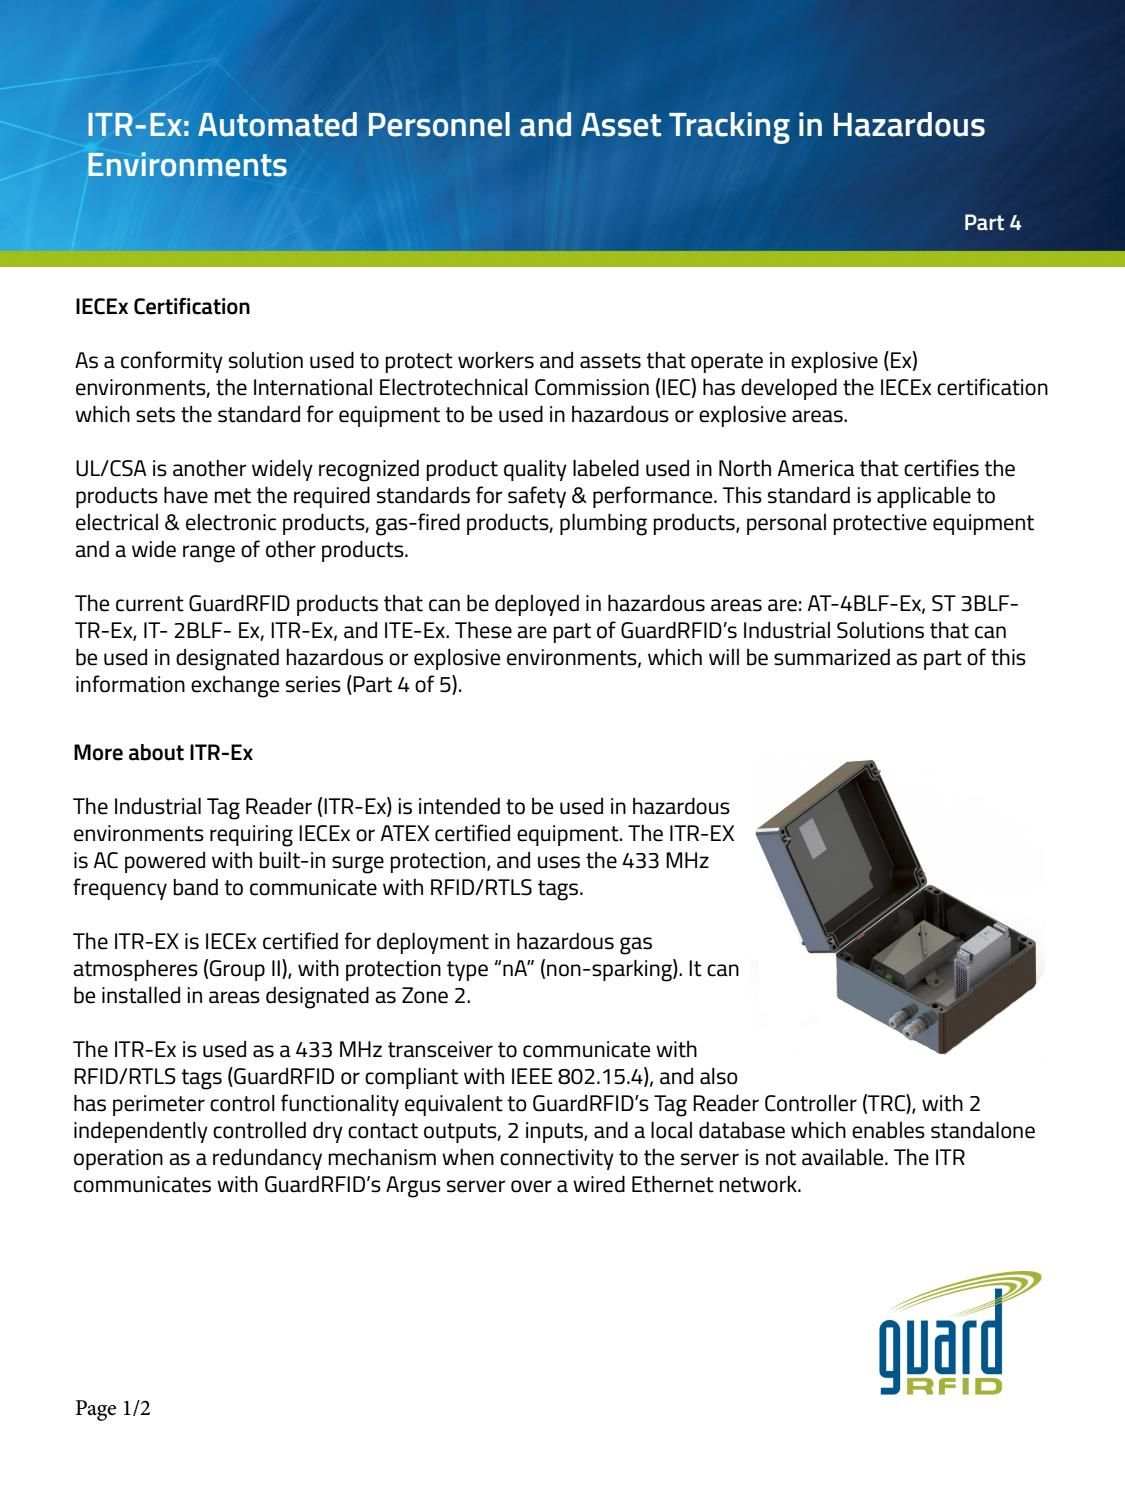 Industrial Tag Reader Itr Ex Is Certified For Use In